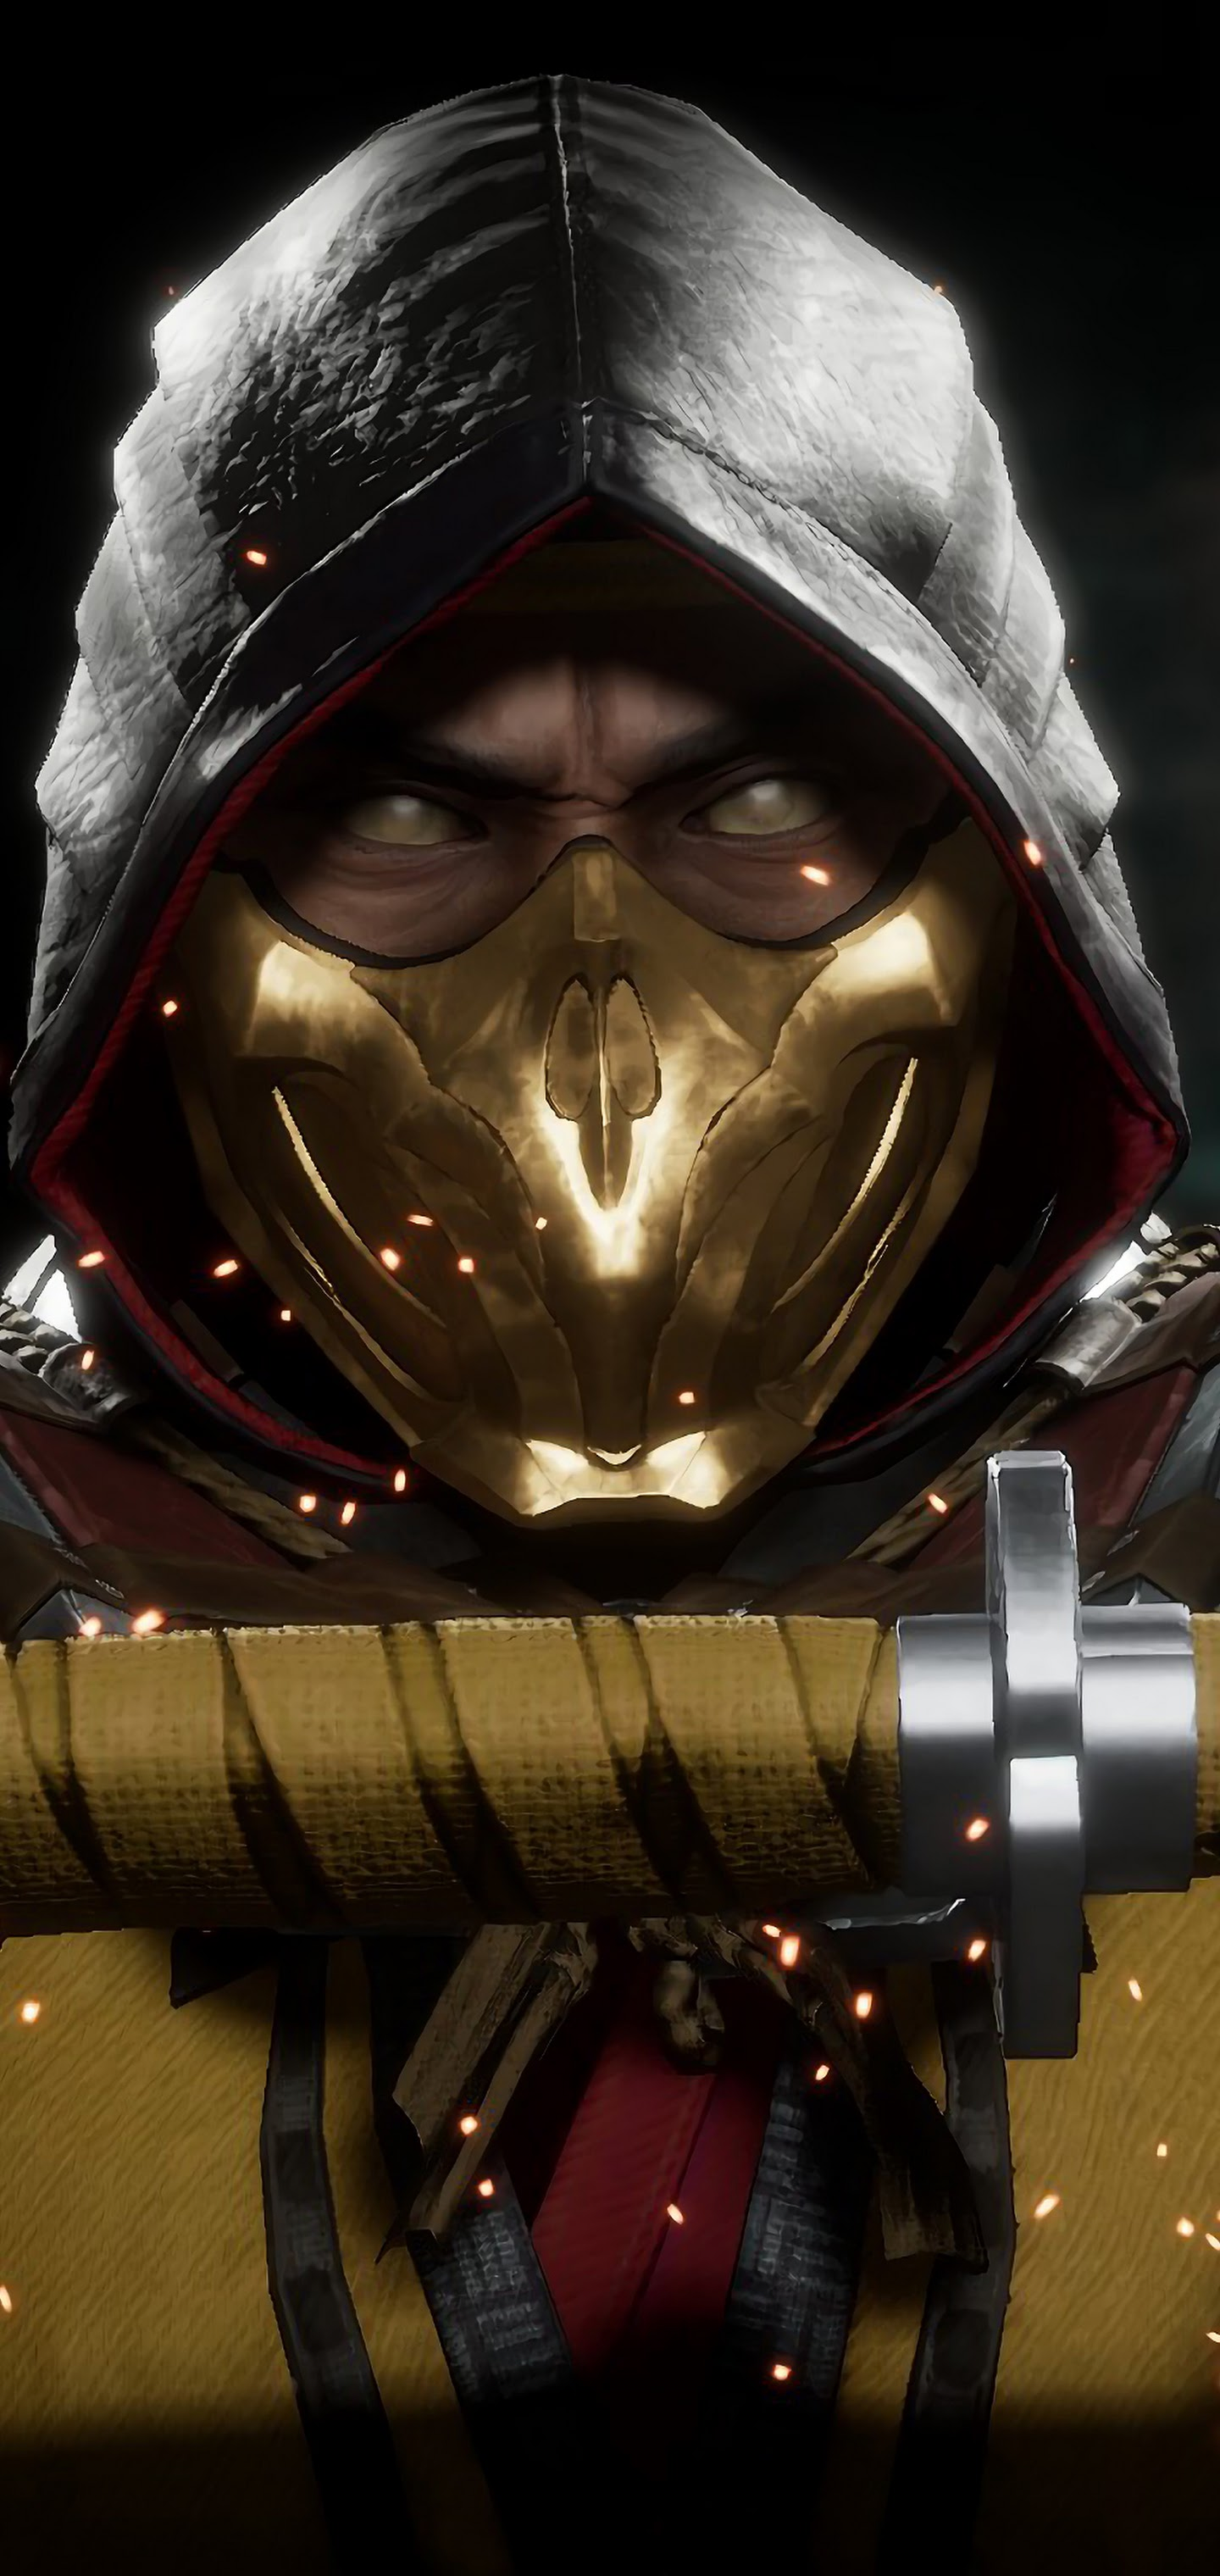 Scorpion Mortal Kombat 11 4k Wallpaper 177